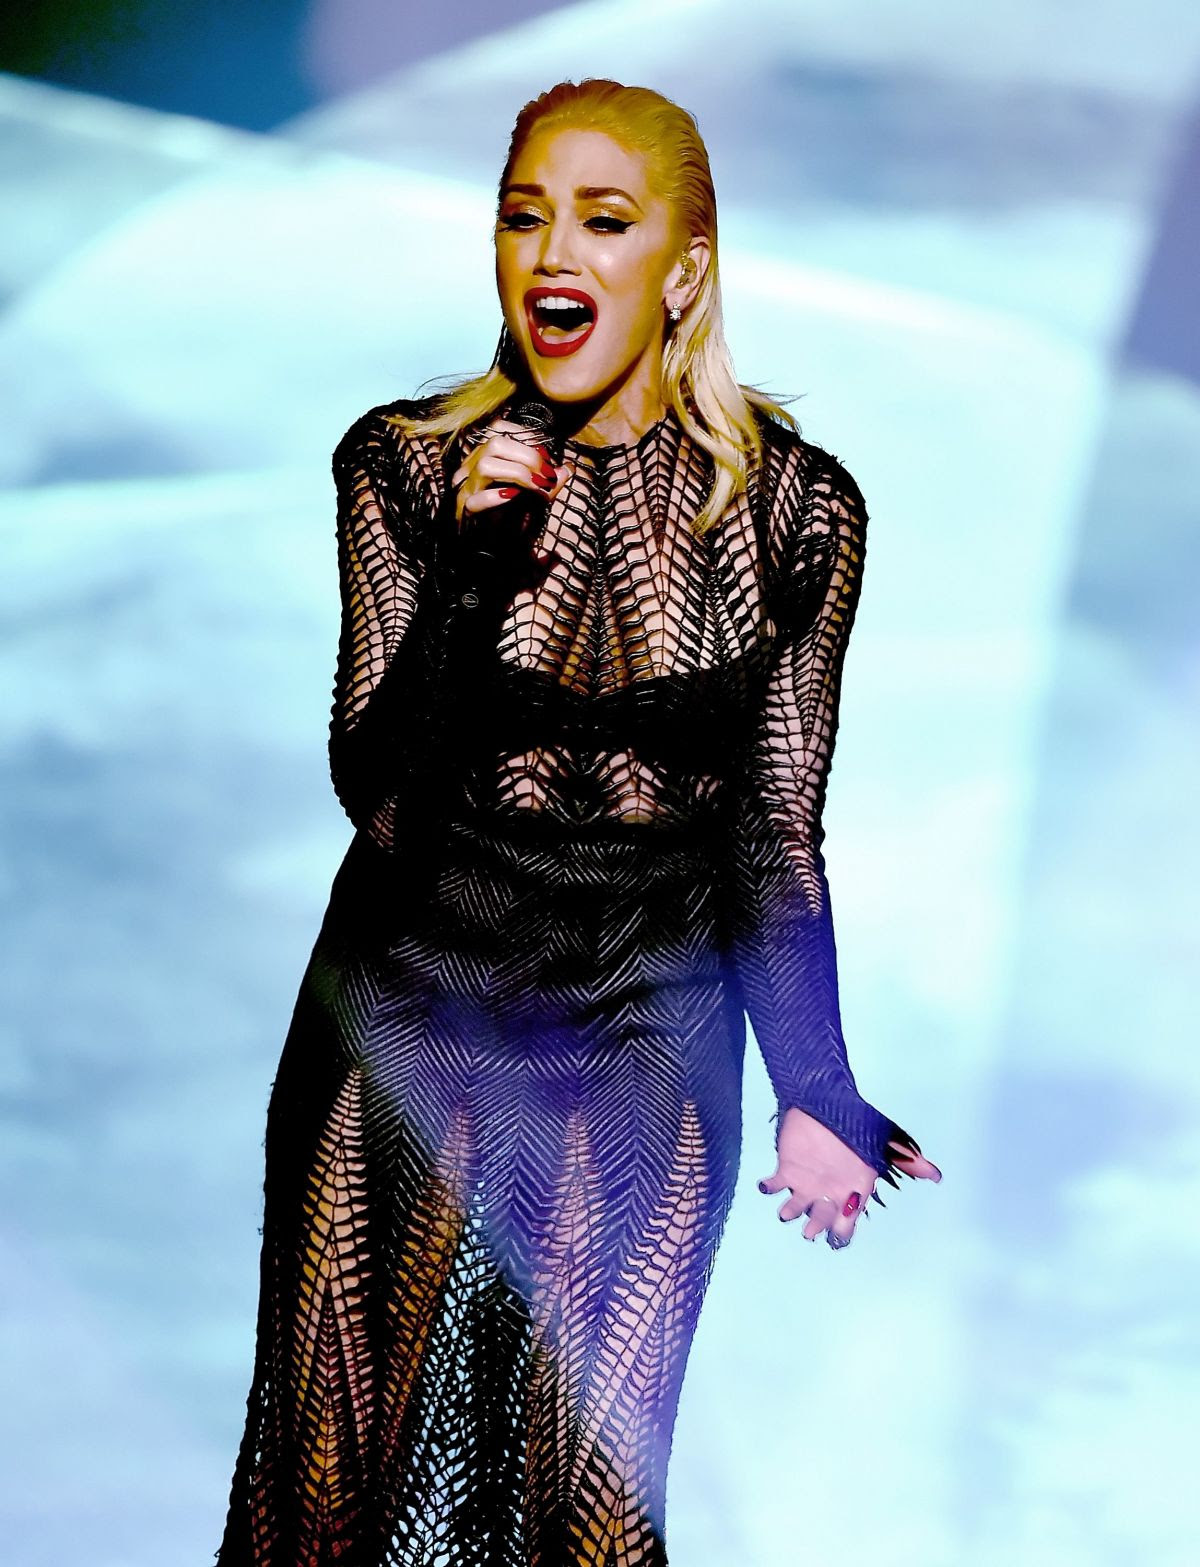 GWEN STEFANI Performs at American Music Awards 2015 11/22/2015